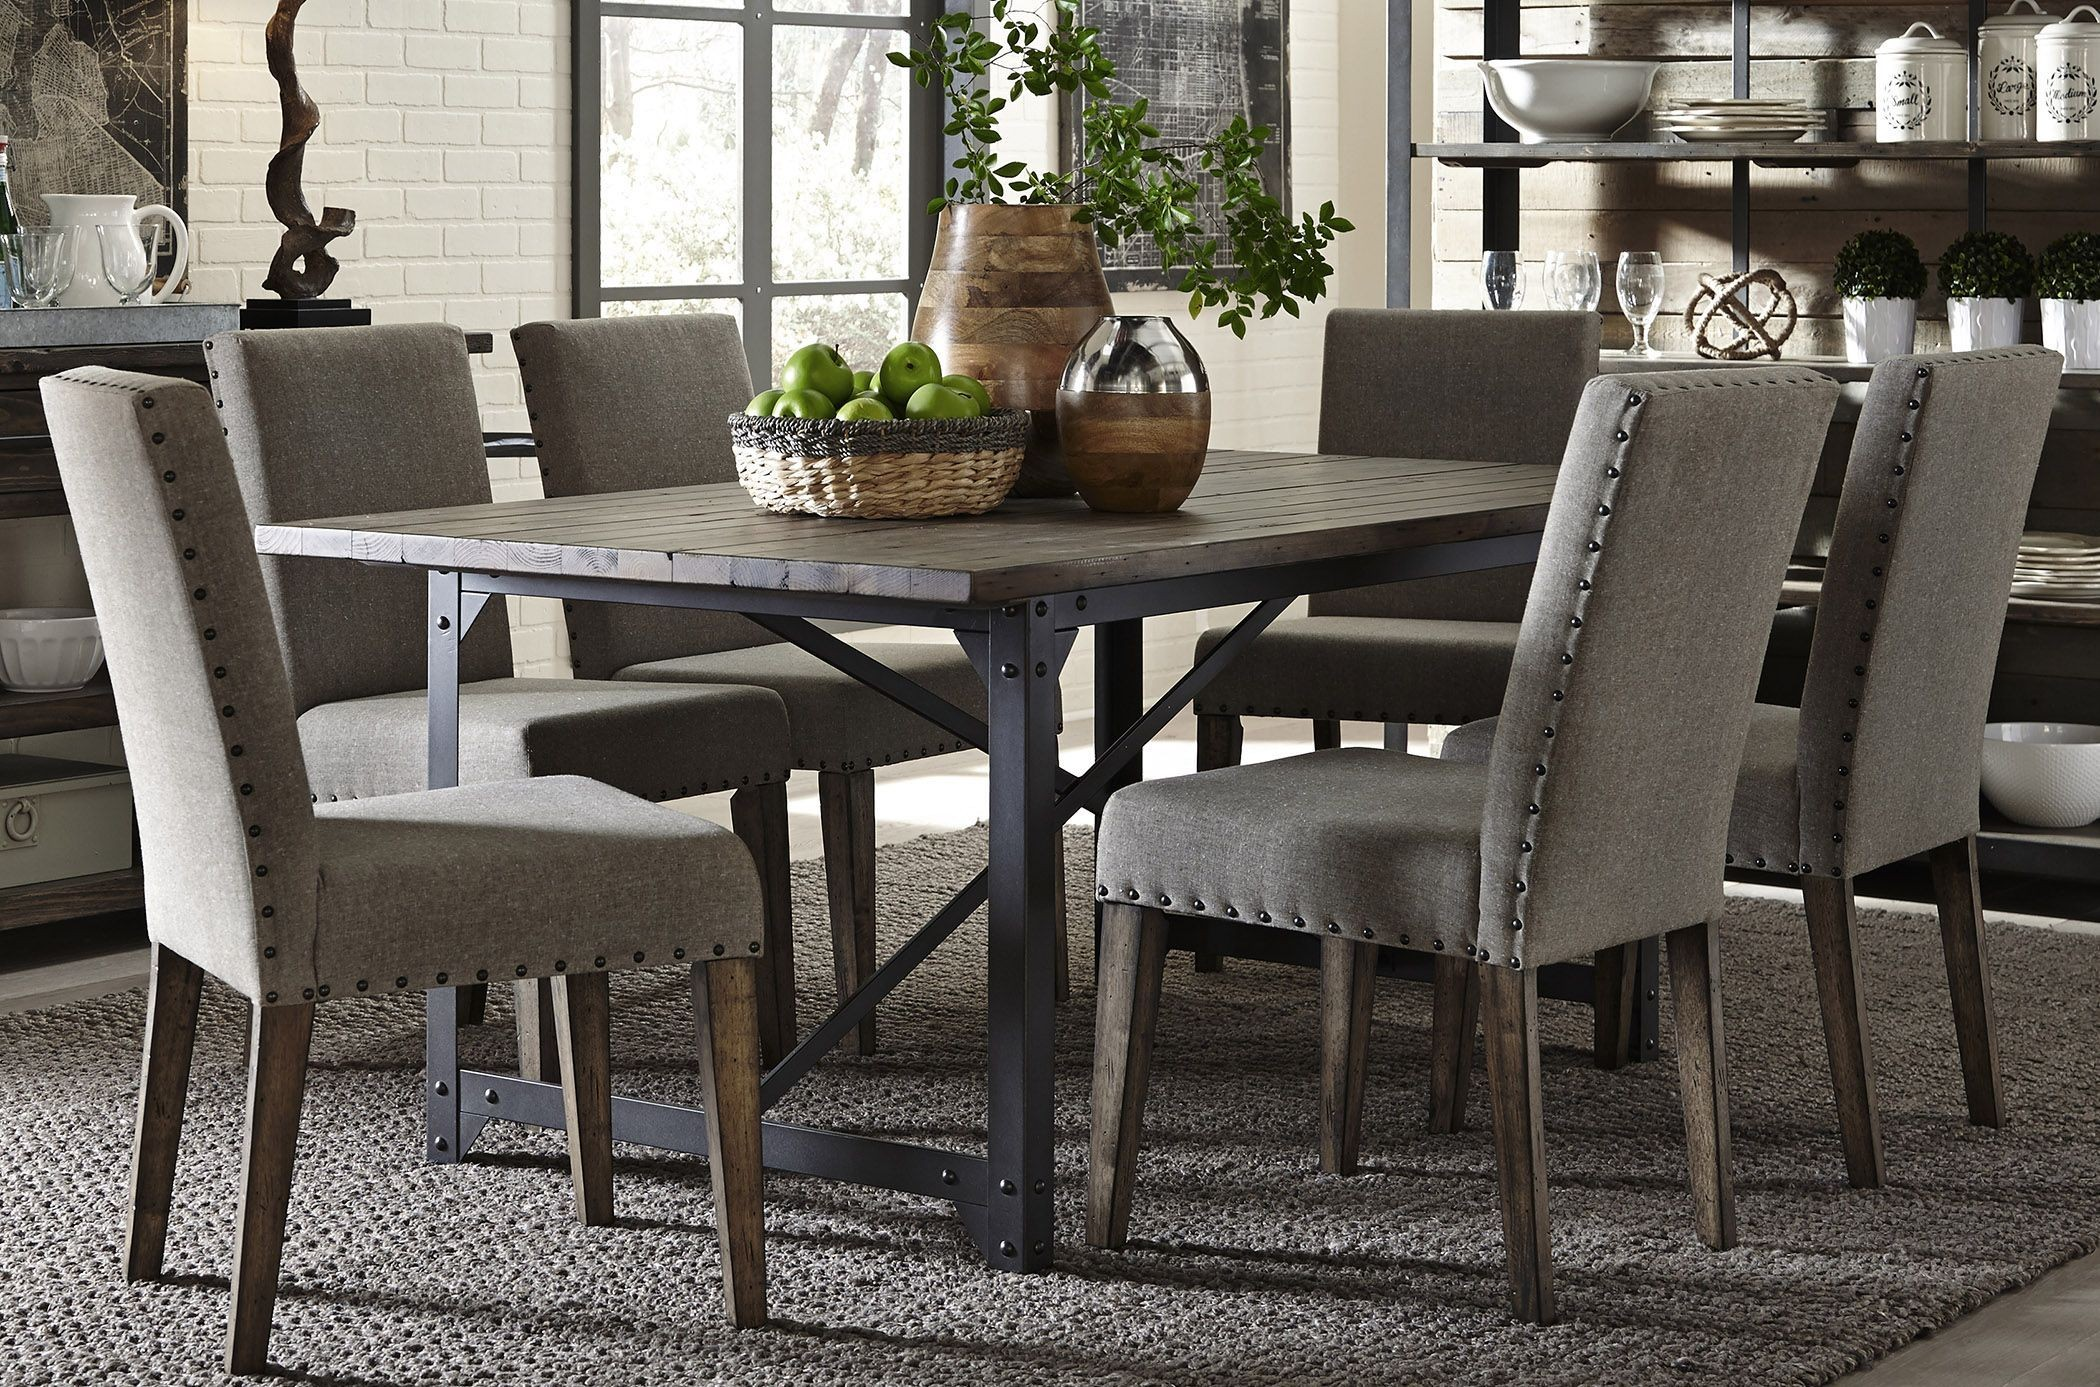 Caldwell dining brown trestle dining room set 117 t4072 for Trestle dining room sets